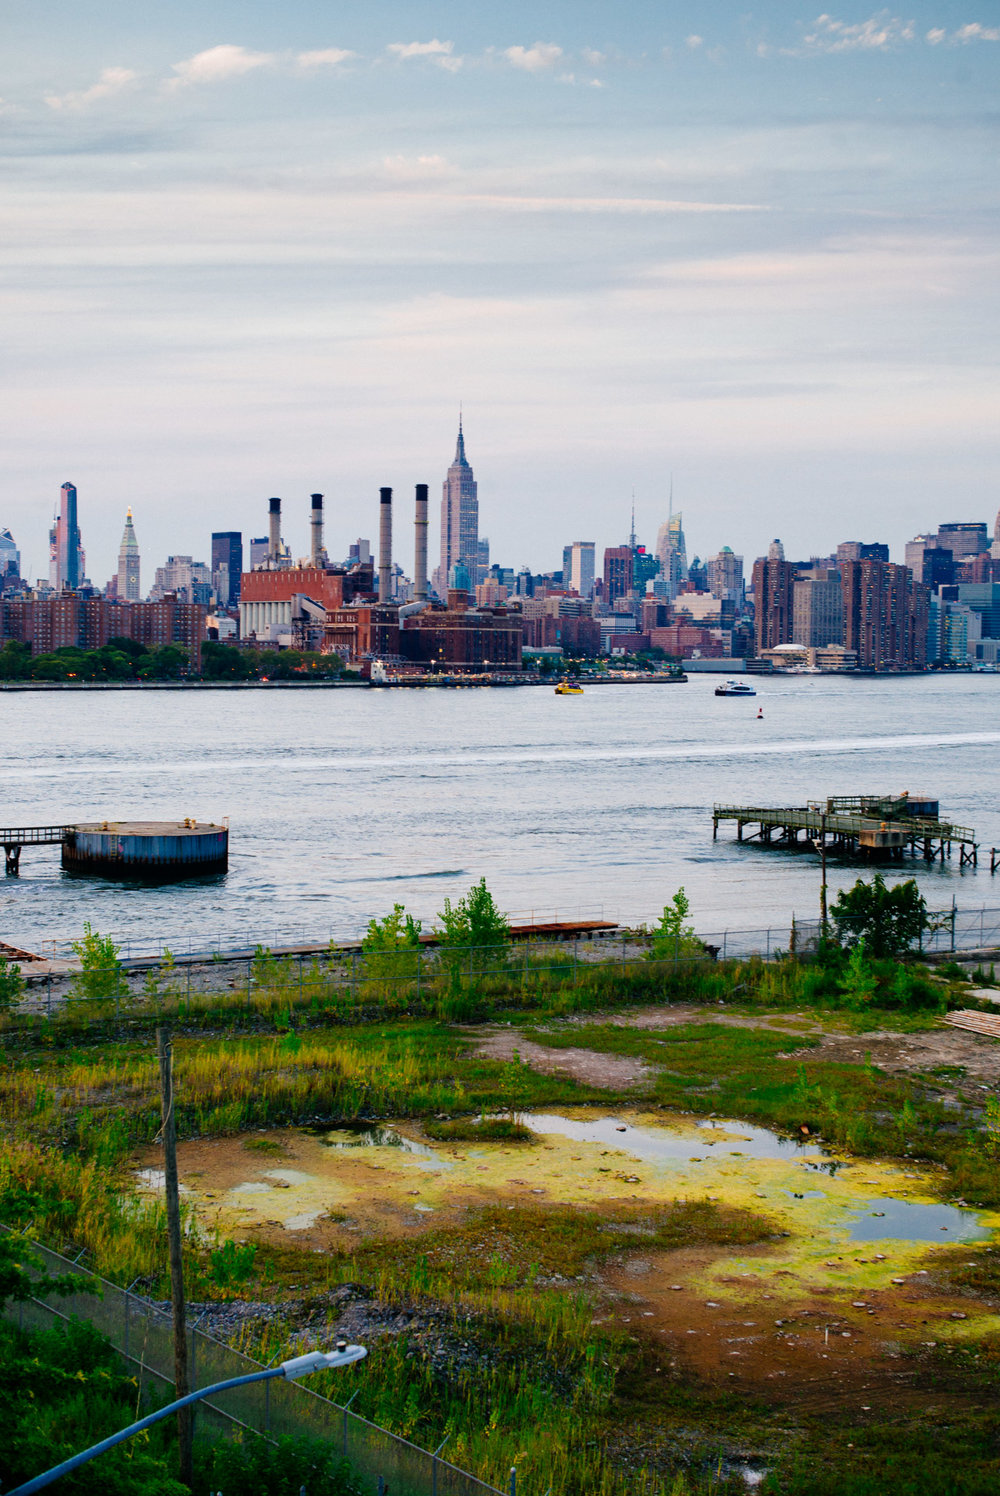 East River, Williamsburg, Brooklyn